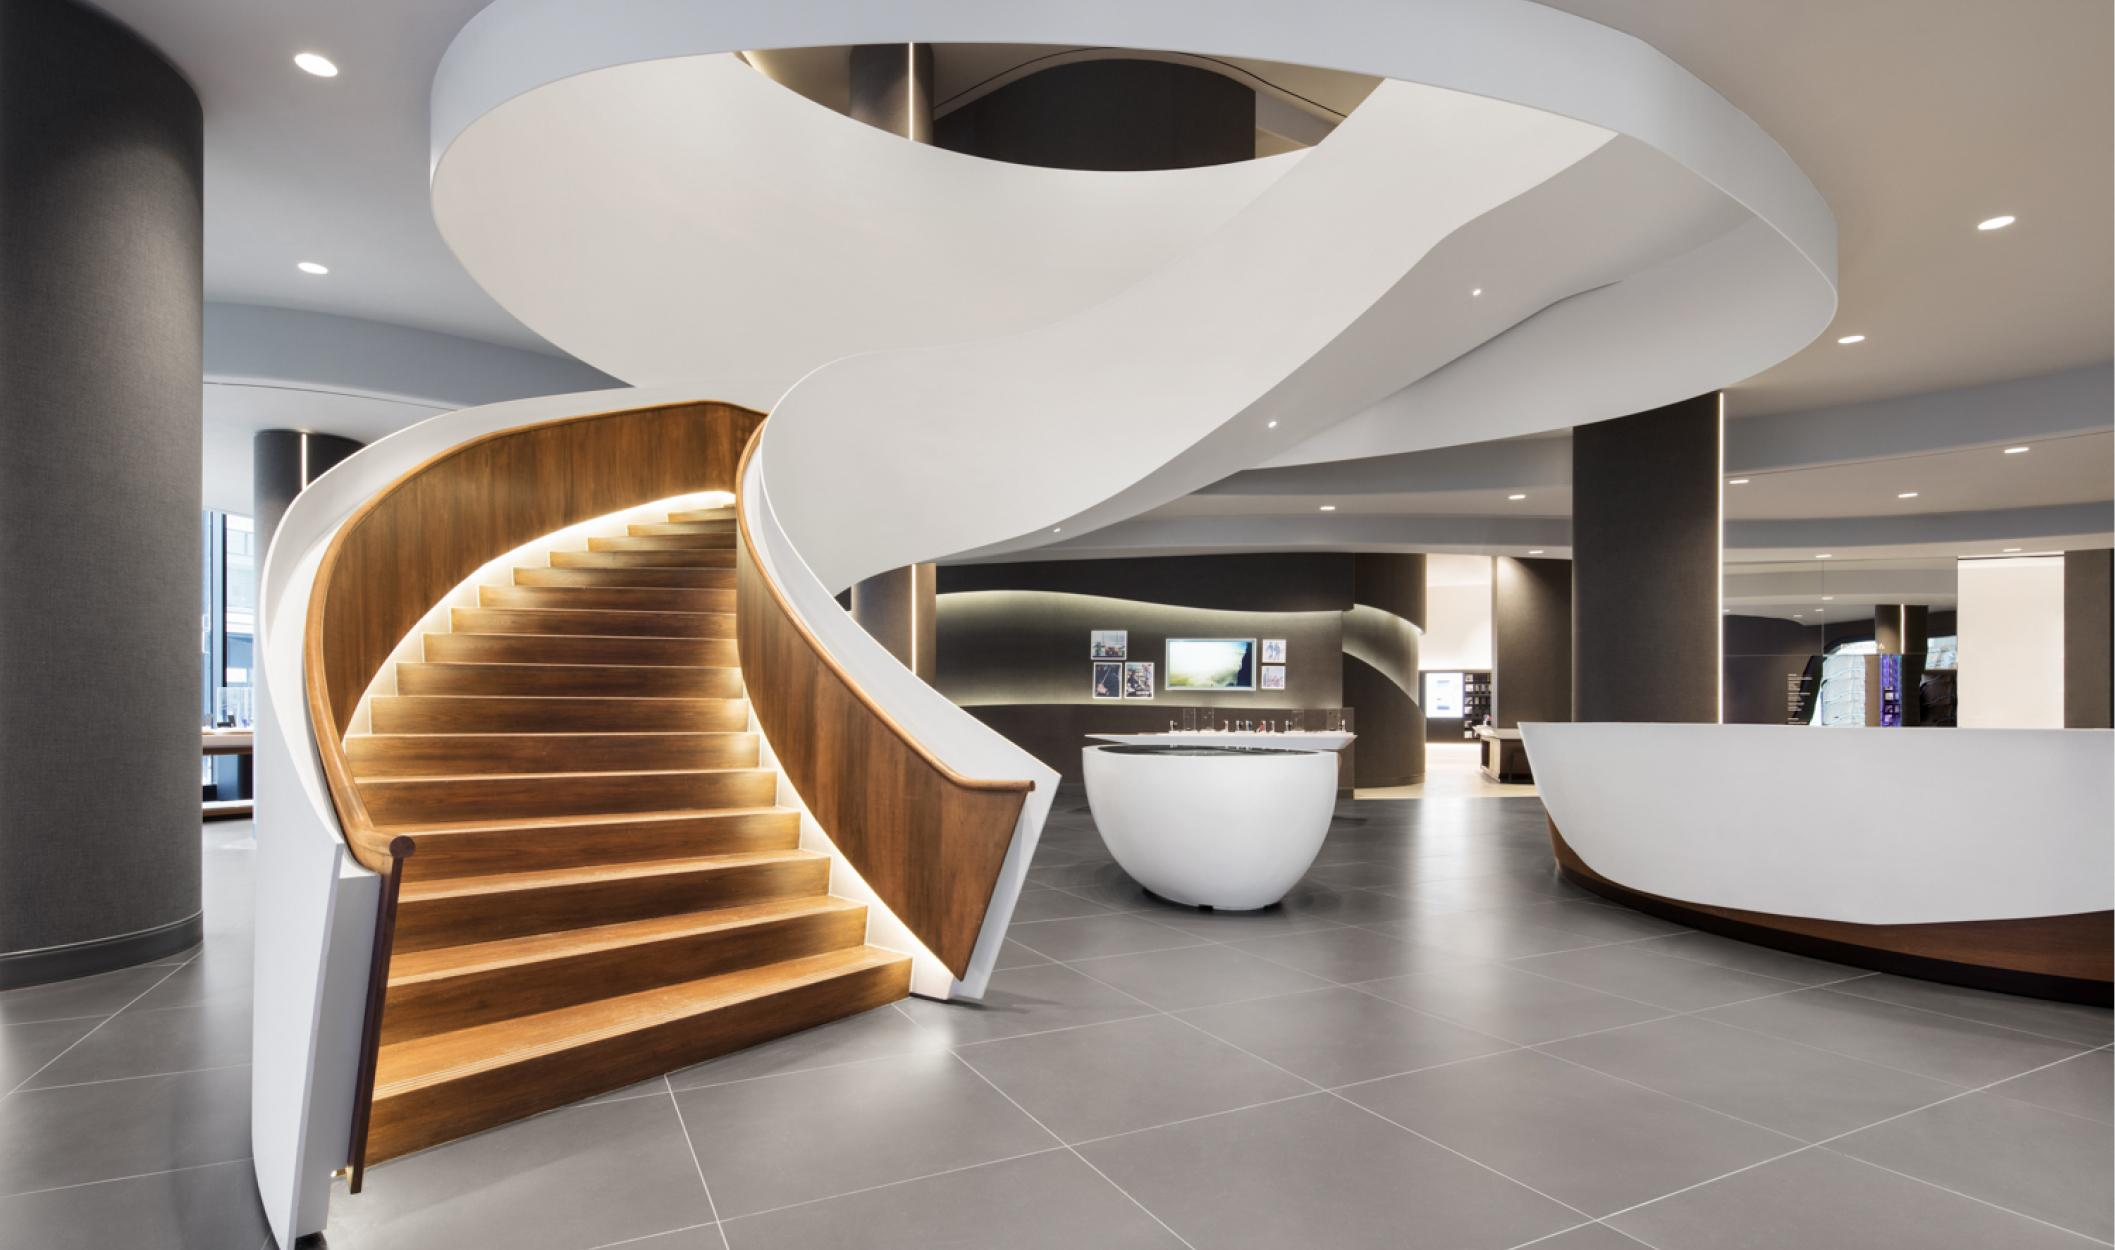 grand curving staircase framed in white steel with downlighting on the warm wooden steps